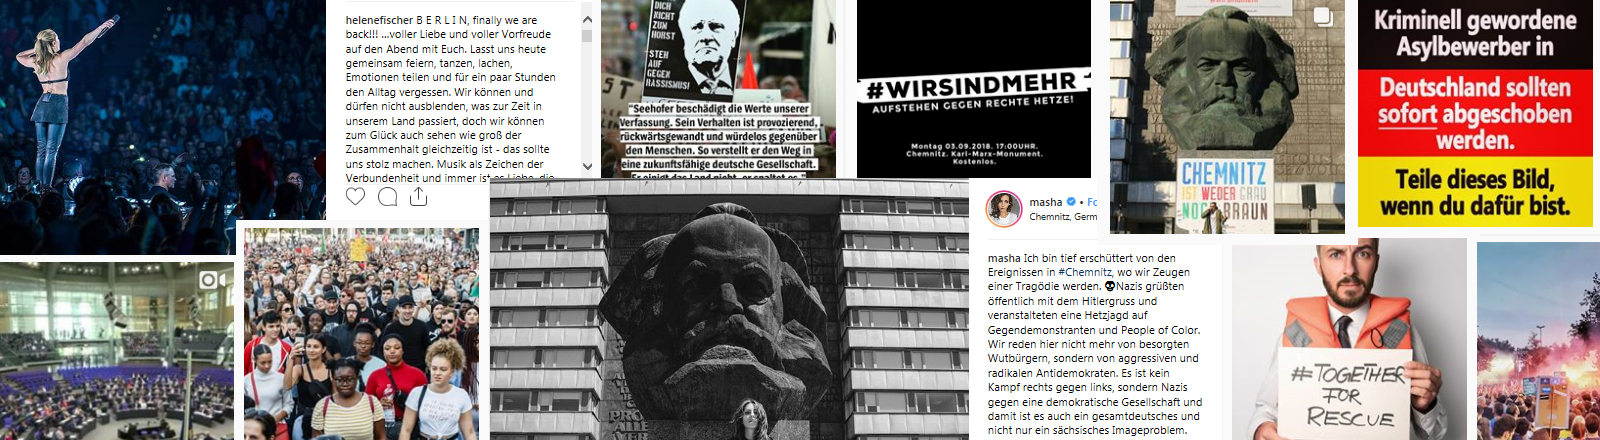 Collage politscher Instagram-Posts